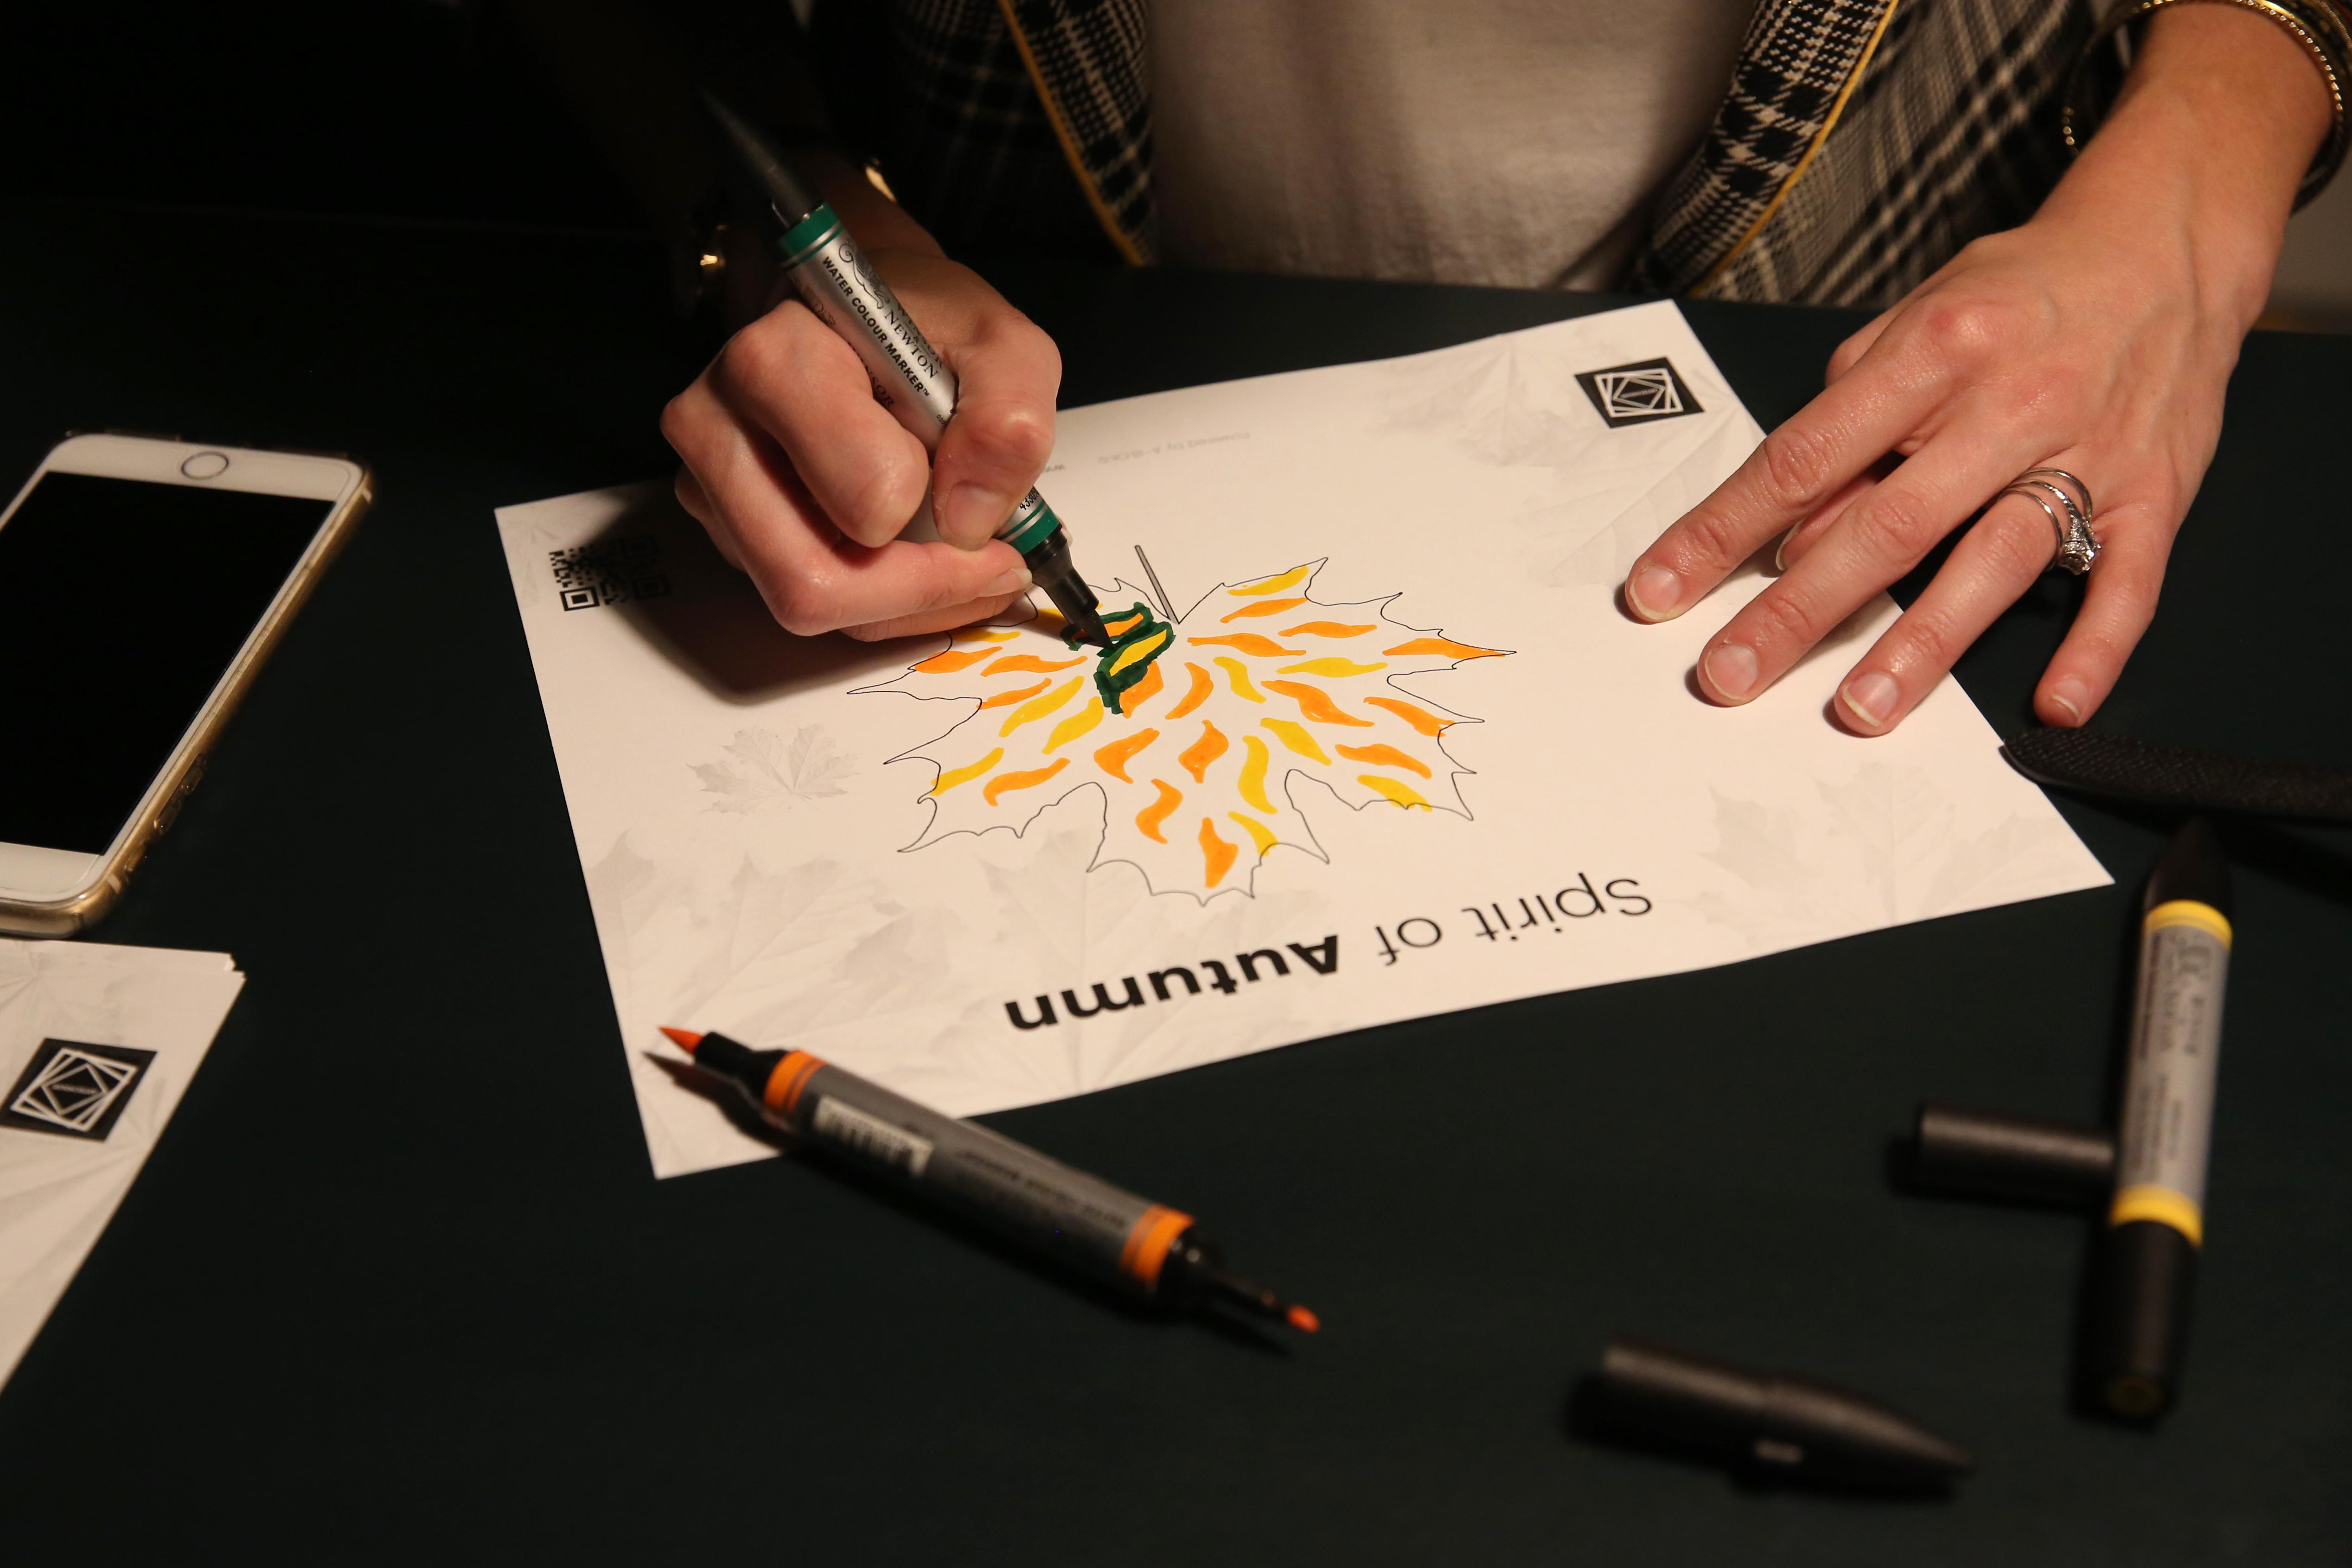 Visitors draw on leaves which are then digitally inserted into the exhibit. (Amanda Andrade-Rhoades/DC Refined)